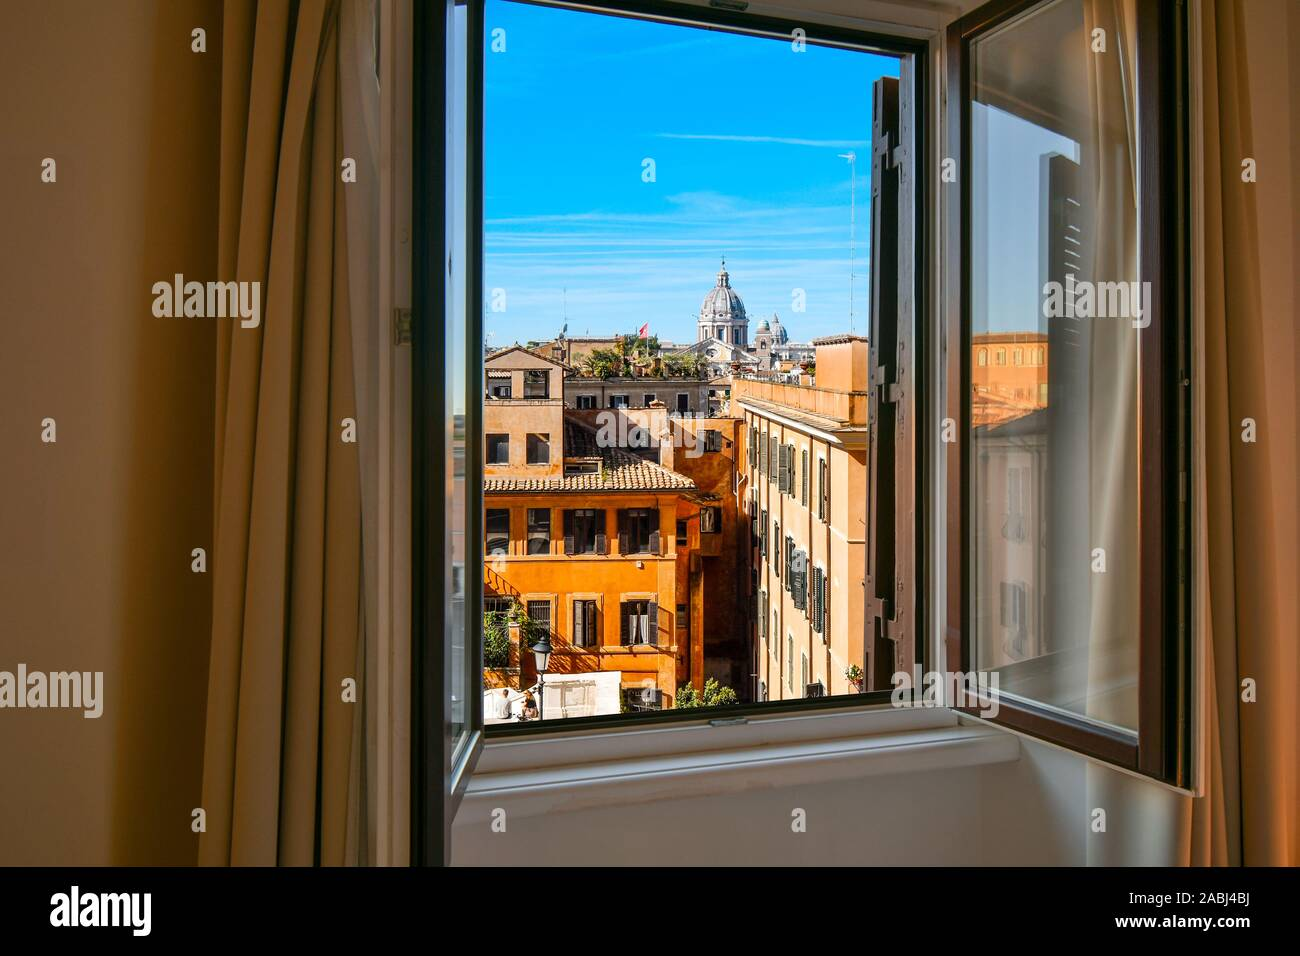 View from window of the dome of the Basilica of SS Ambrose and Charles Church on the Corso in Rome, Italy. Stock Photo